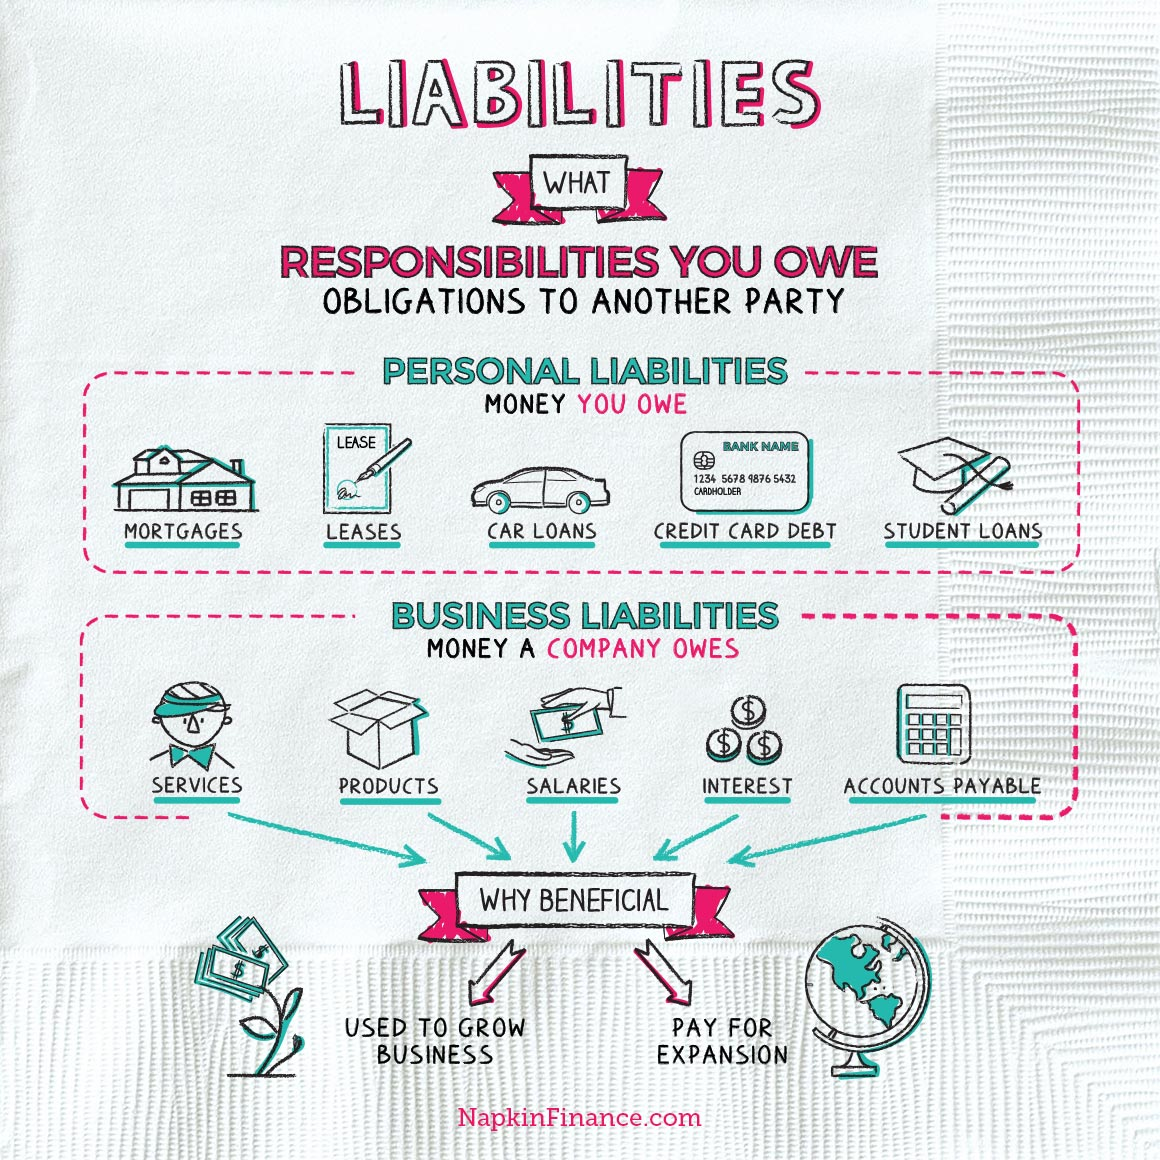 NapkinFinance-Liabilities-Napkin-05-22-19-v02